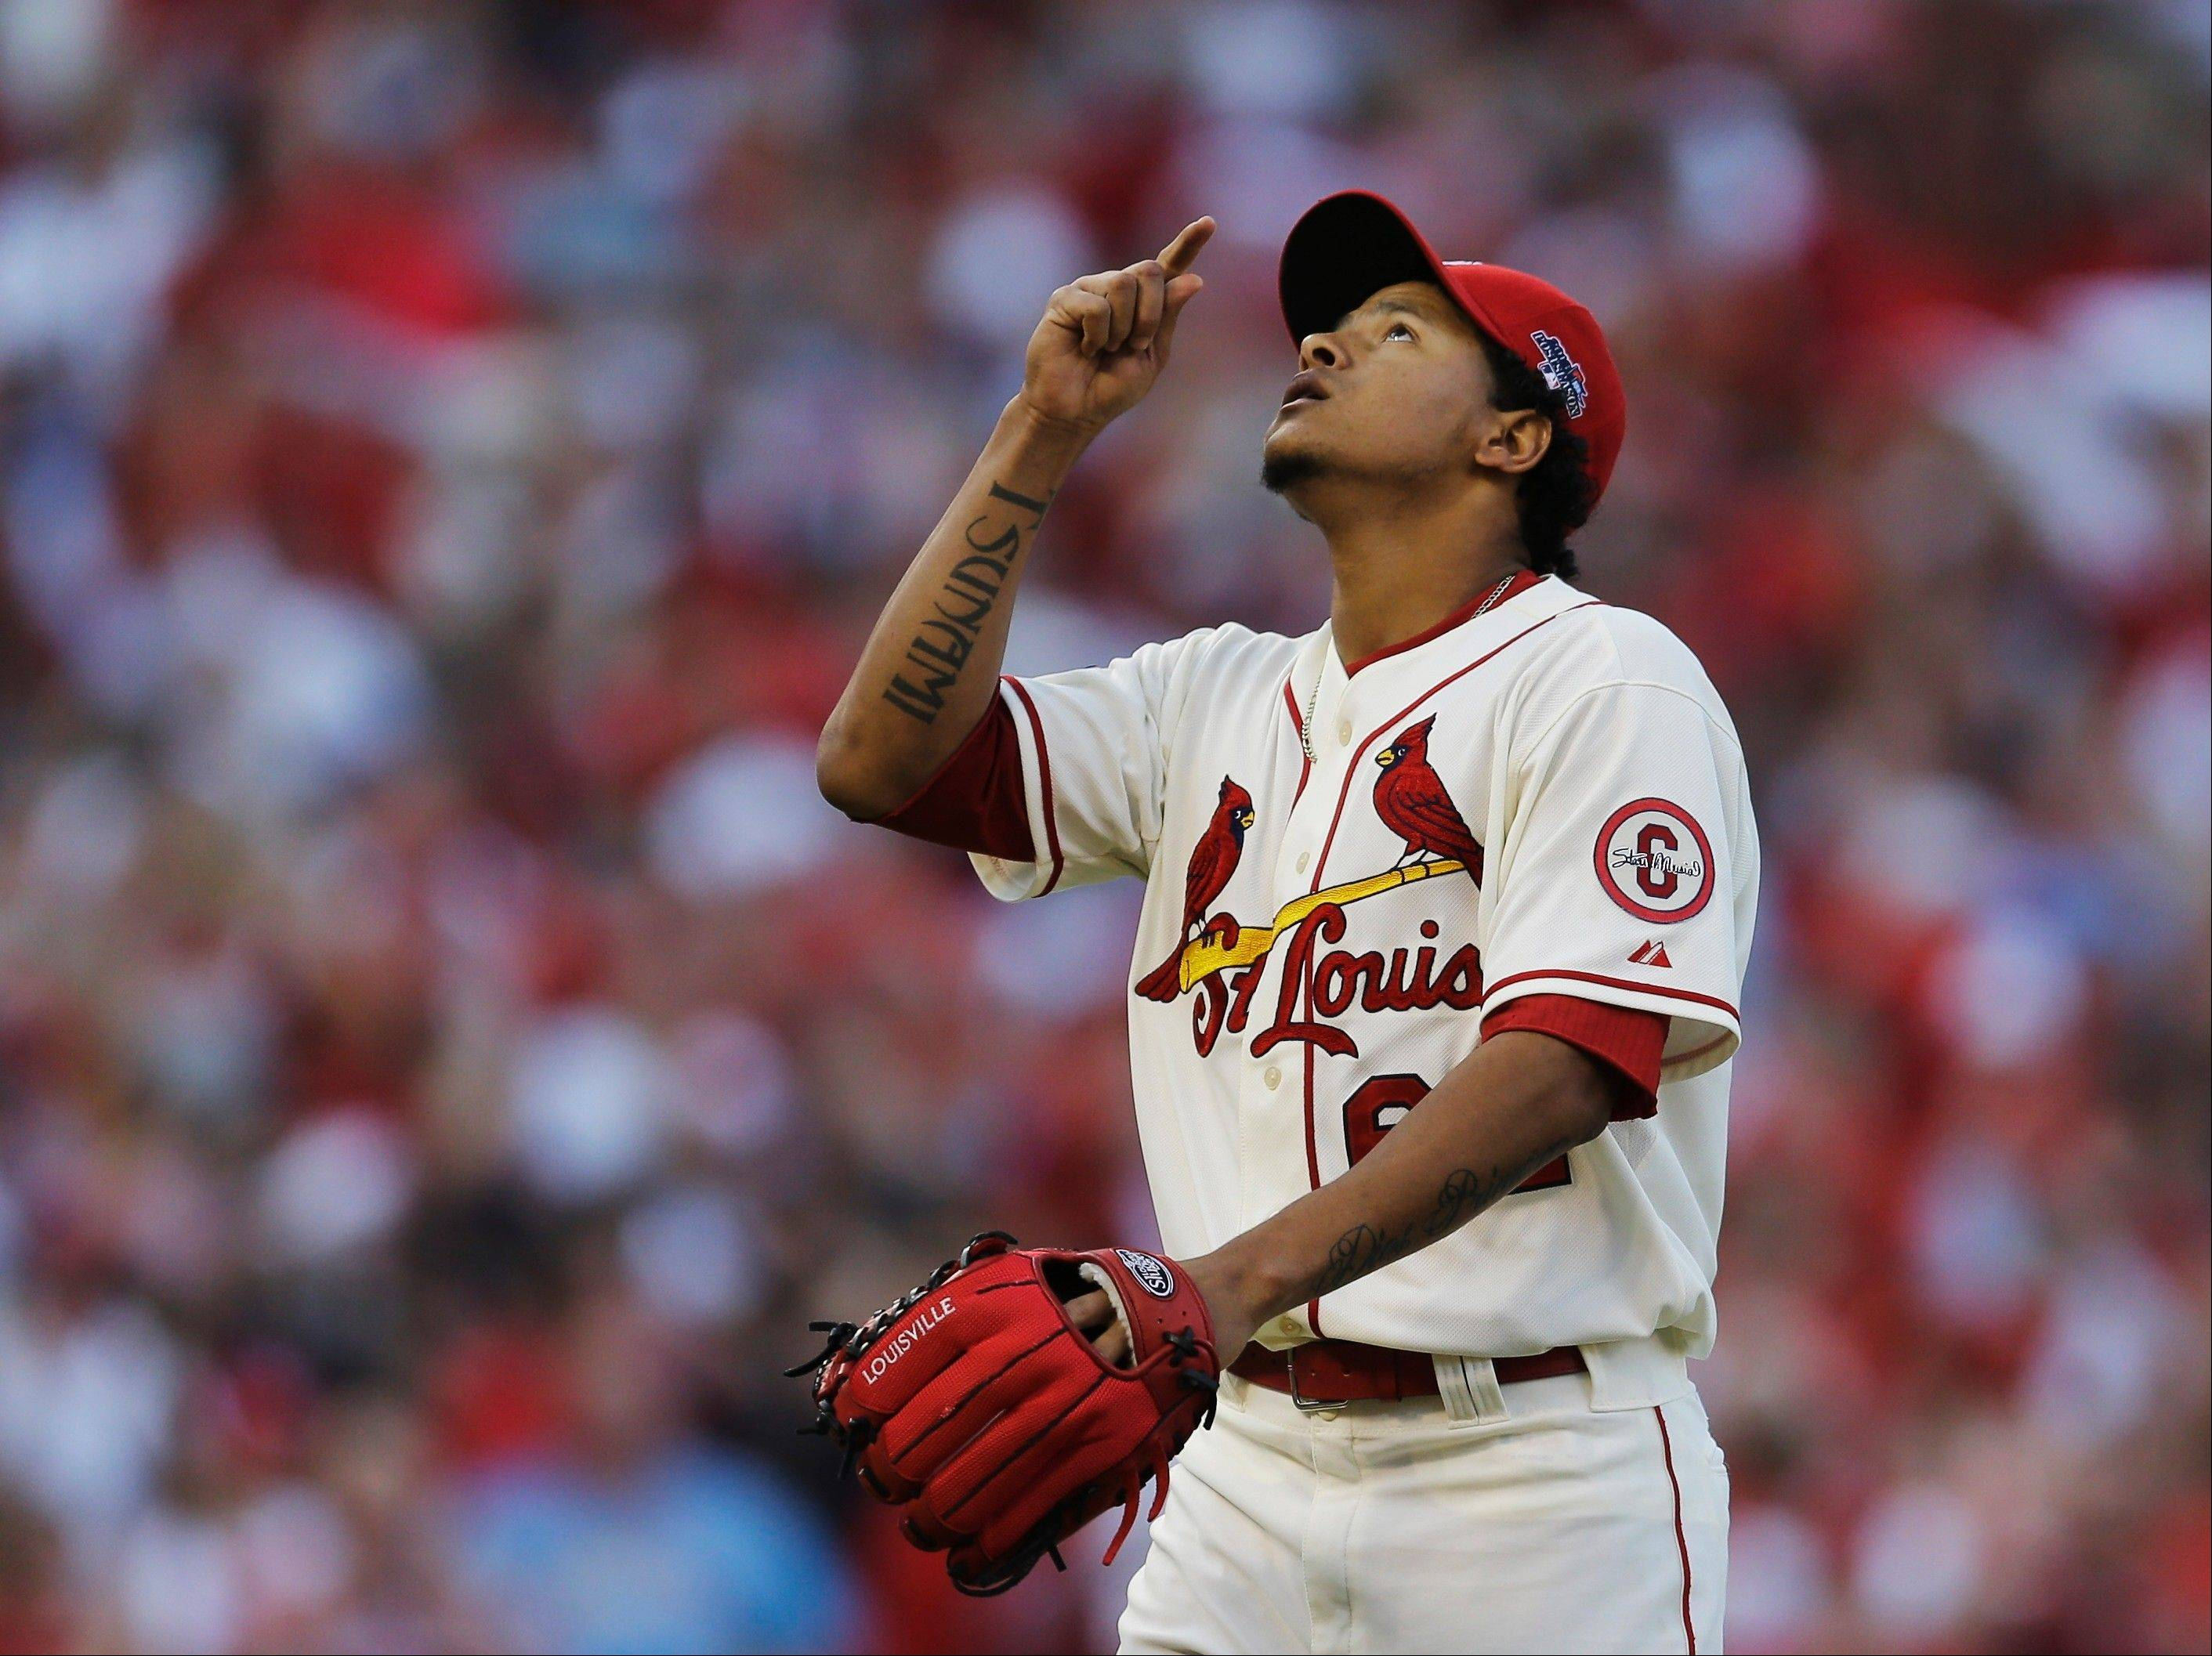 St. Louis Cardinals relief pitcher Carlos Martinez sky-points after striking out the Los Angeles Dodgers� Adrian Gonzalez in Saturday�s eighth inning.